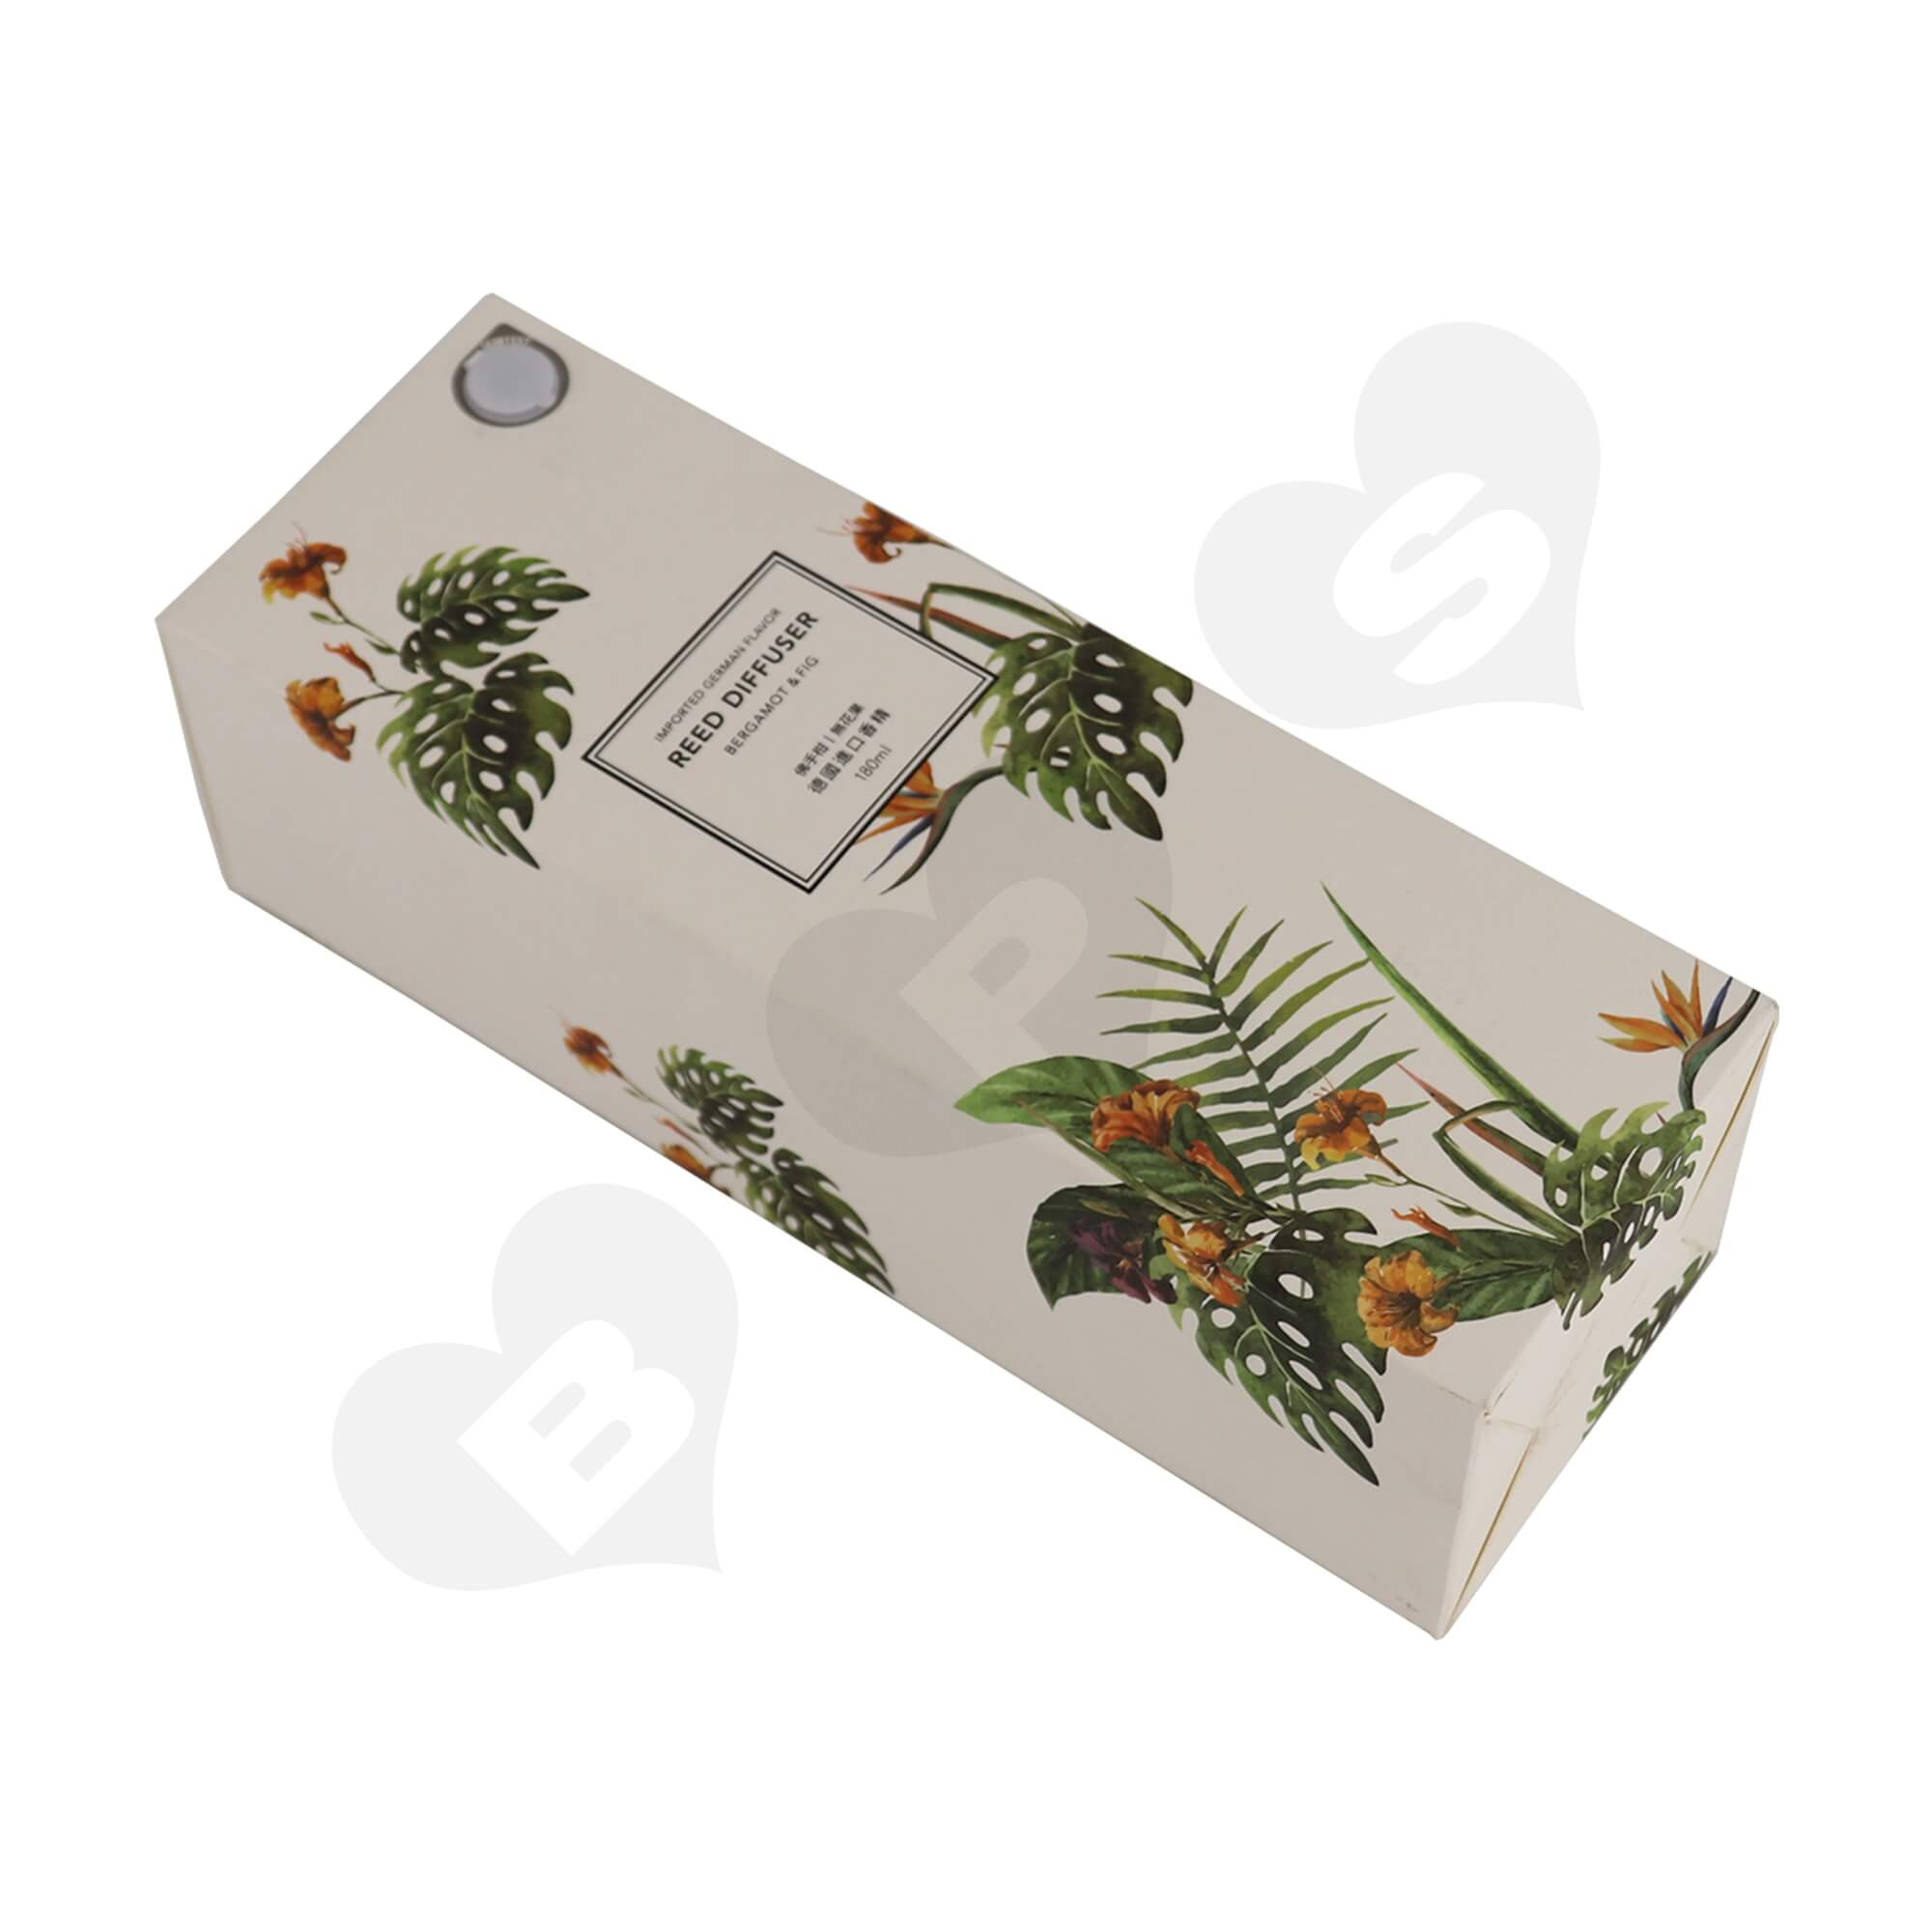 Cardboard Folding Carton For Packing Scent Diffuser With Testing Valve Side View Two